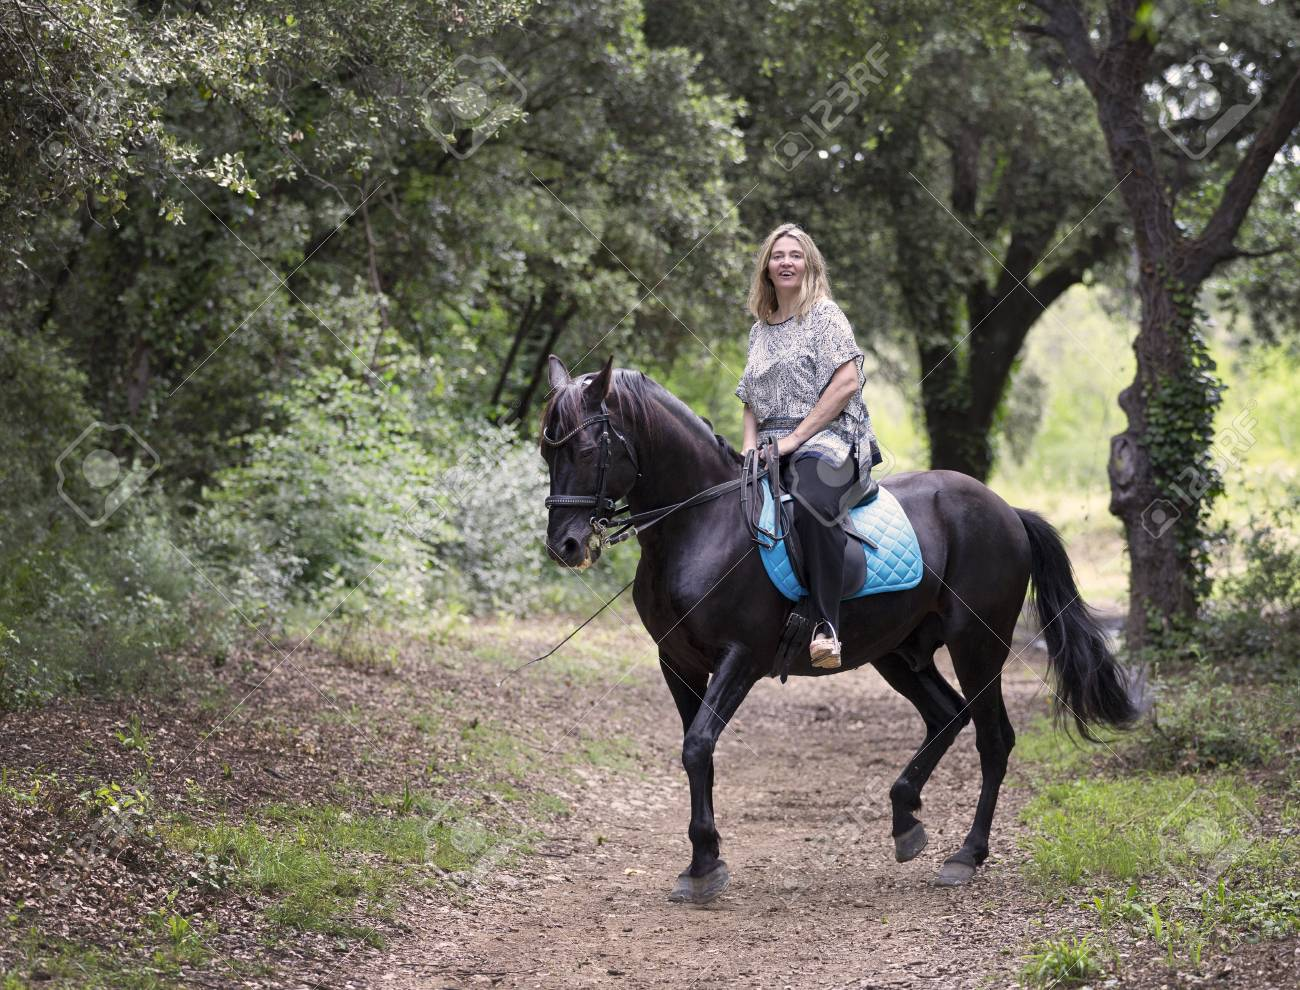 Woman Rider And Her Black Horse Are Walking In Nature Stock Photo Picture And Royalty Free Image Image 106578514